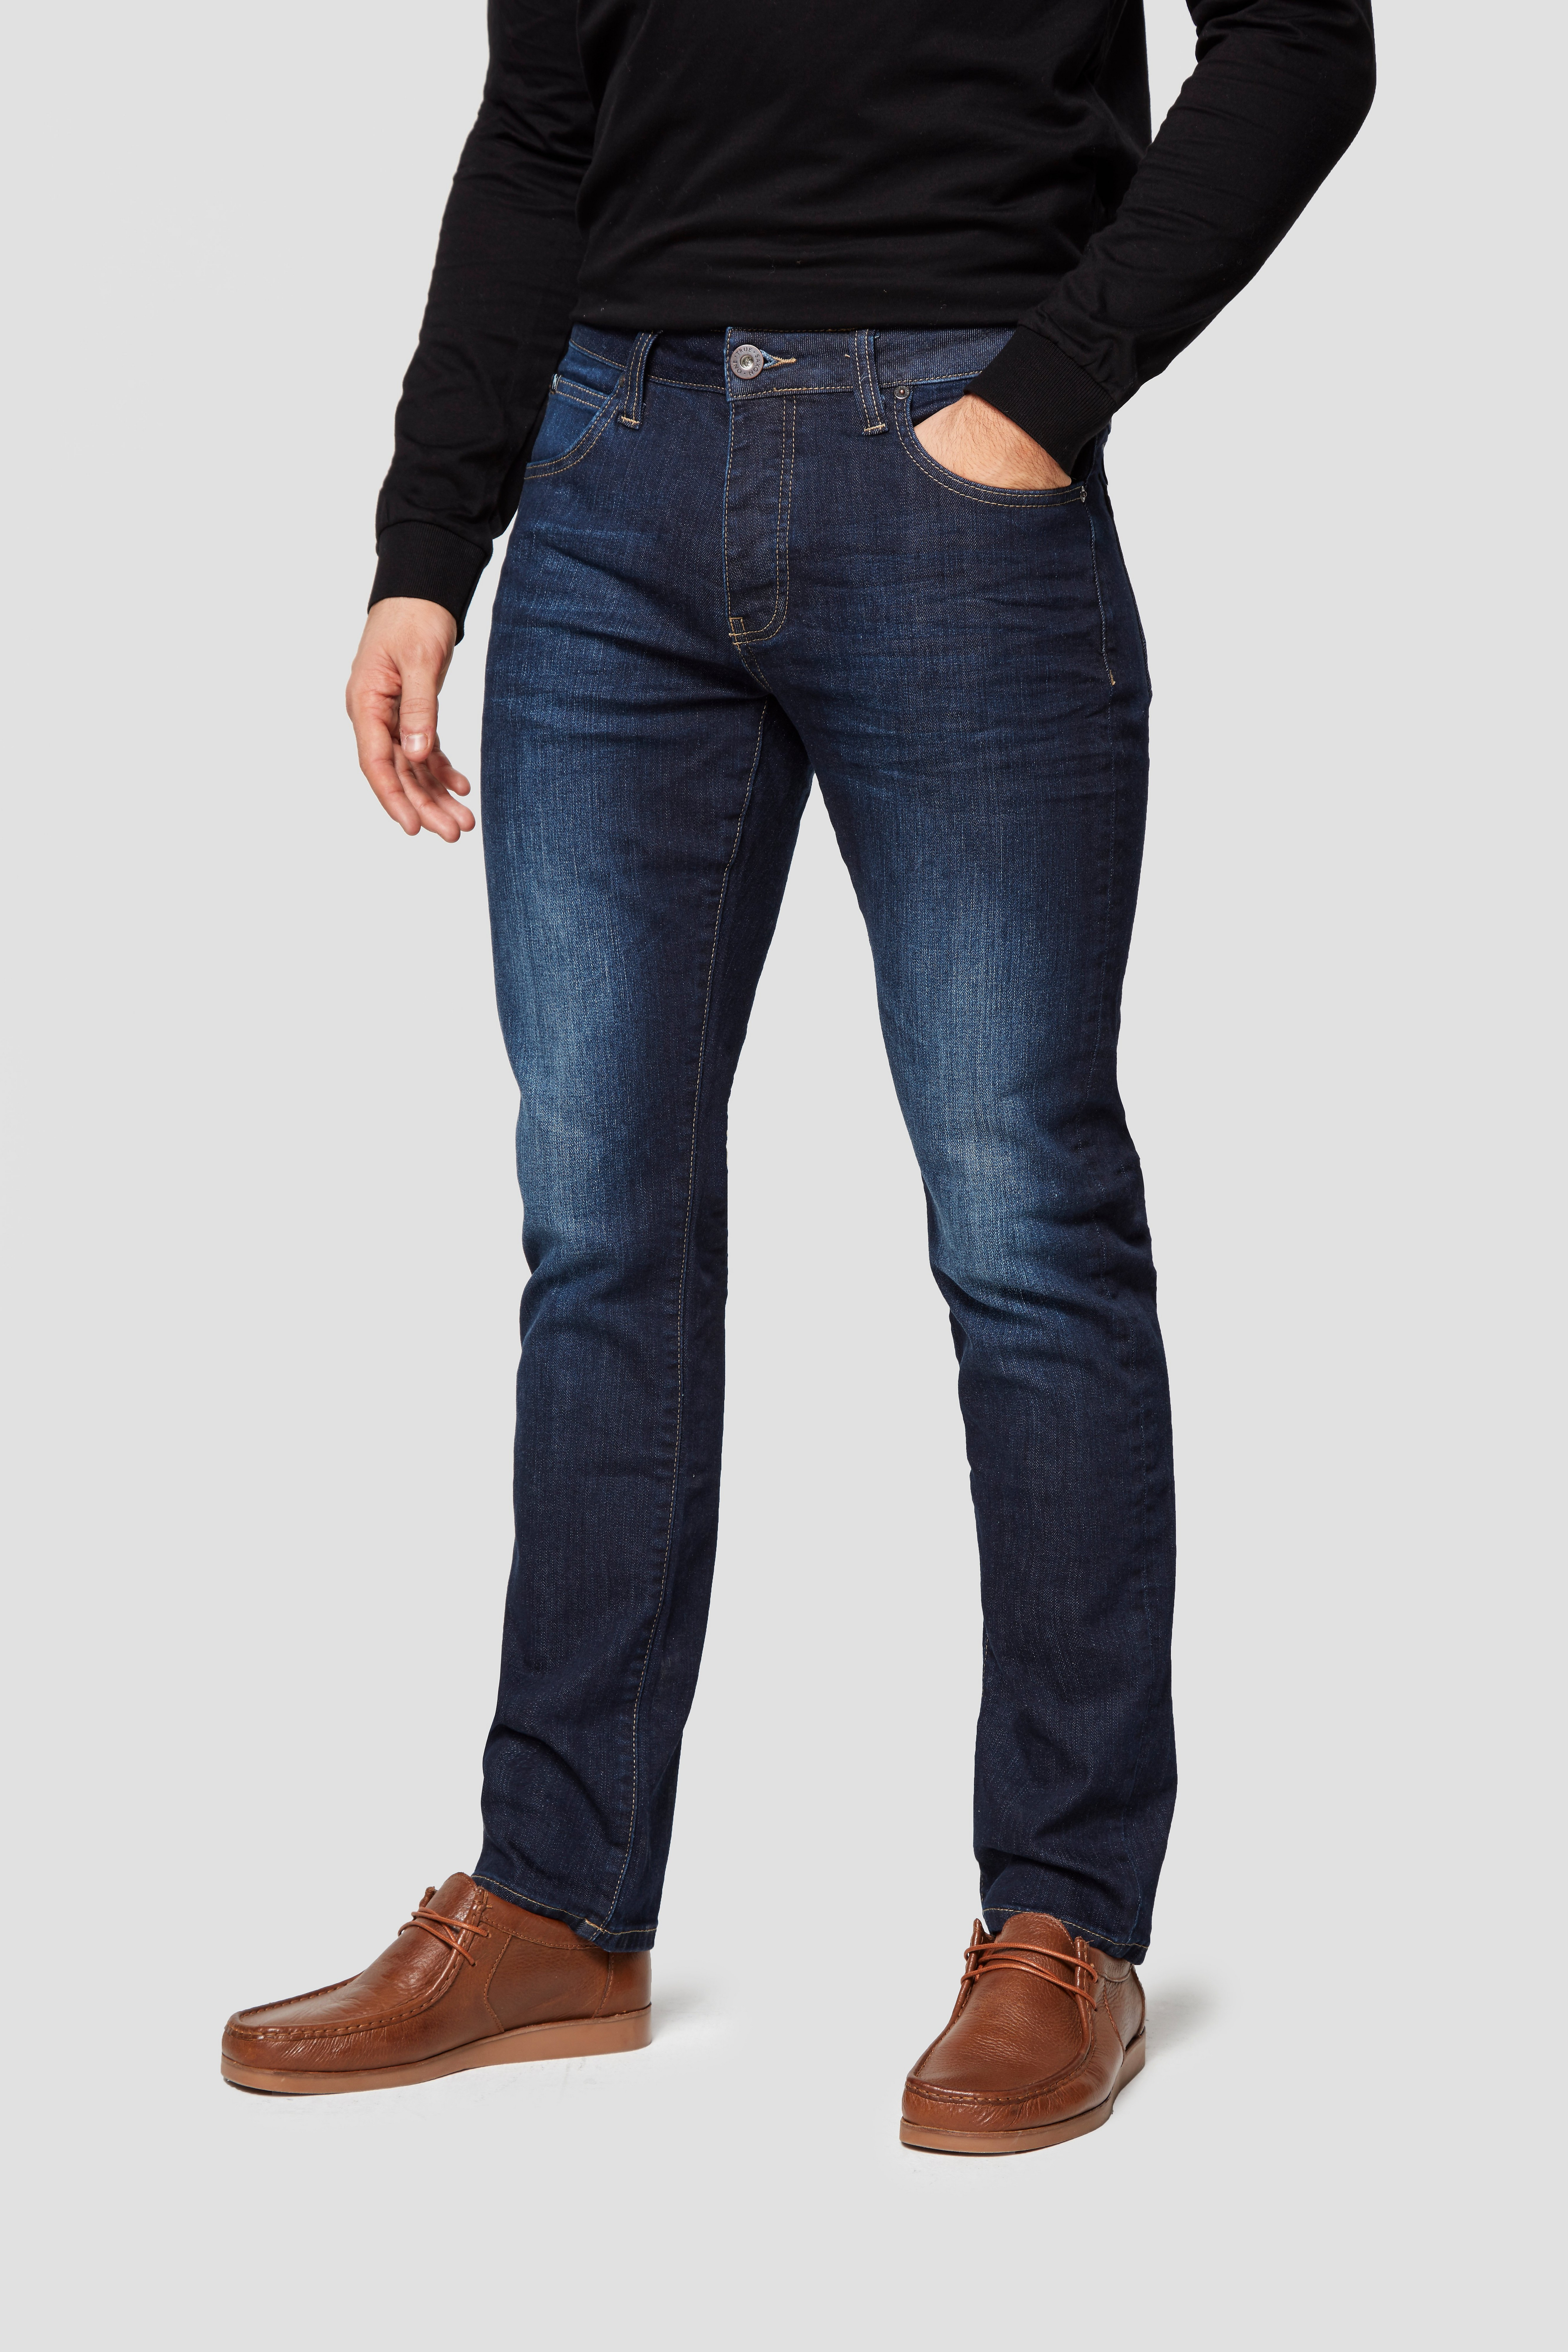 One True Saxon Tapered Jean - Exclusive